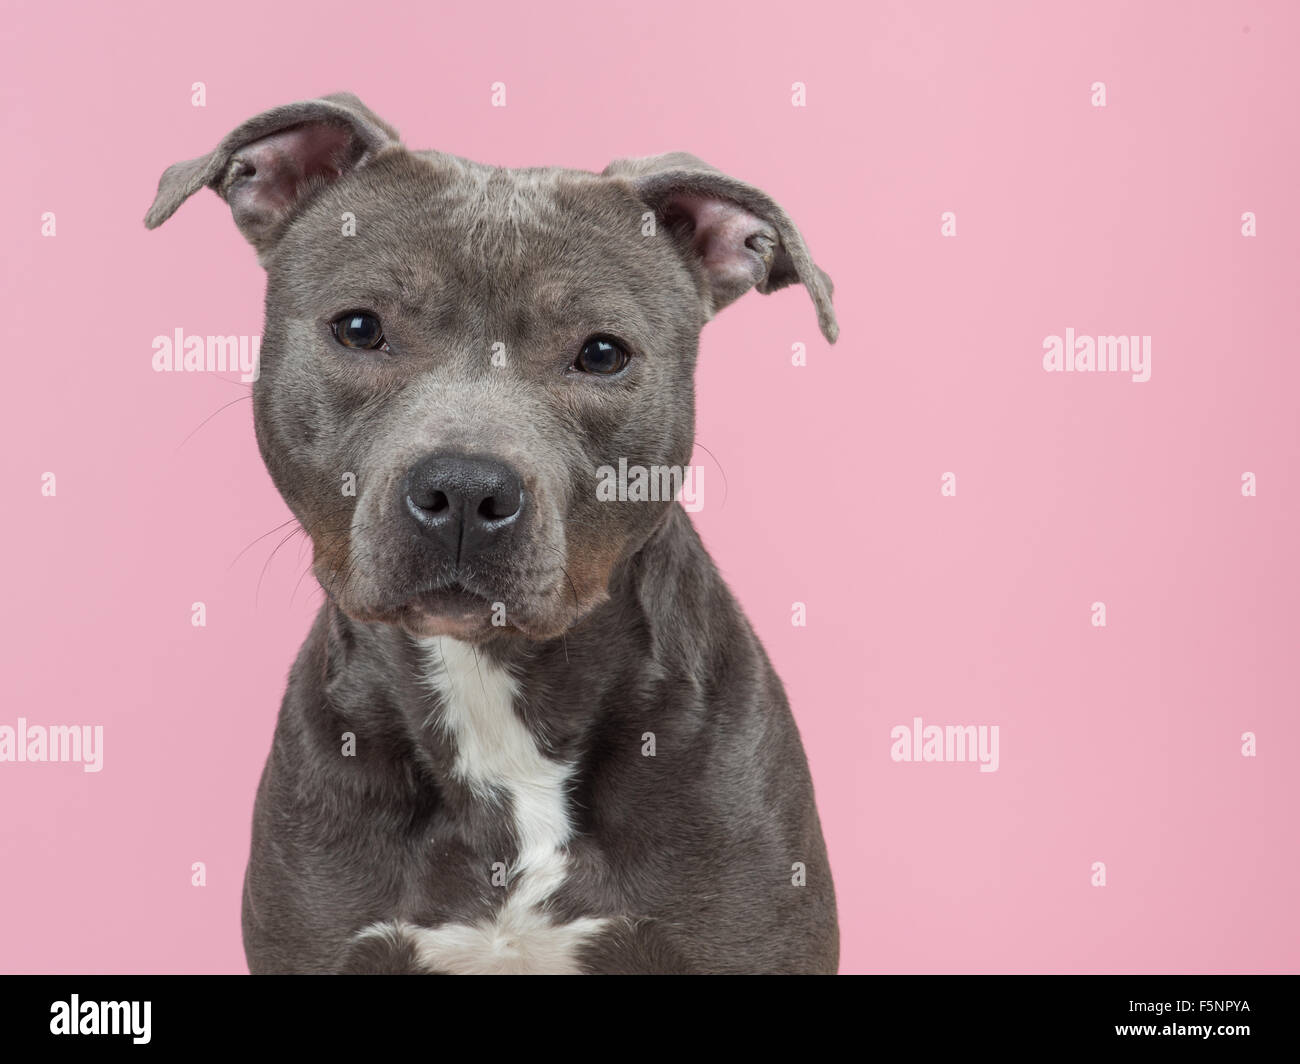 Cute pitbull dog on pink background - Stock Image